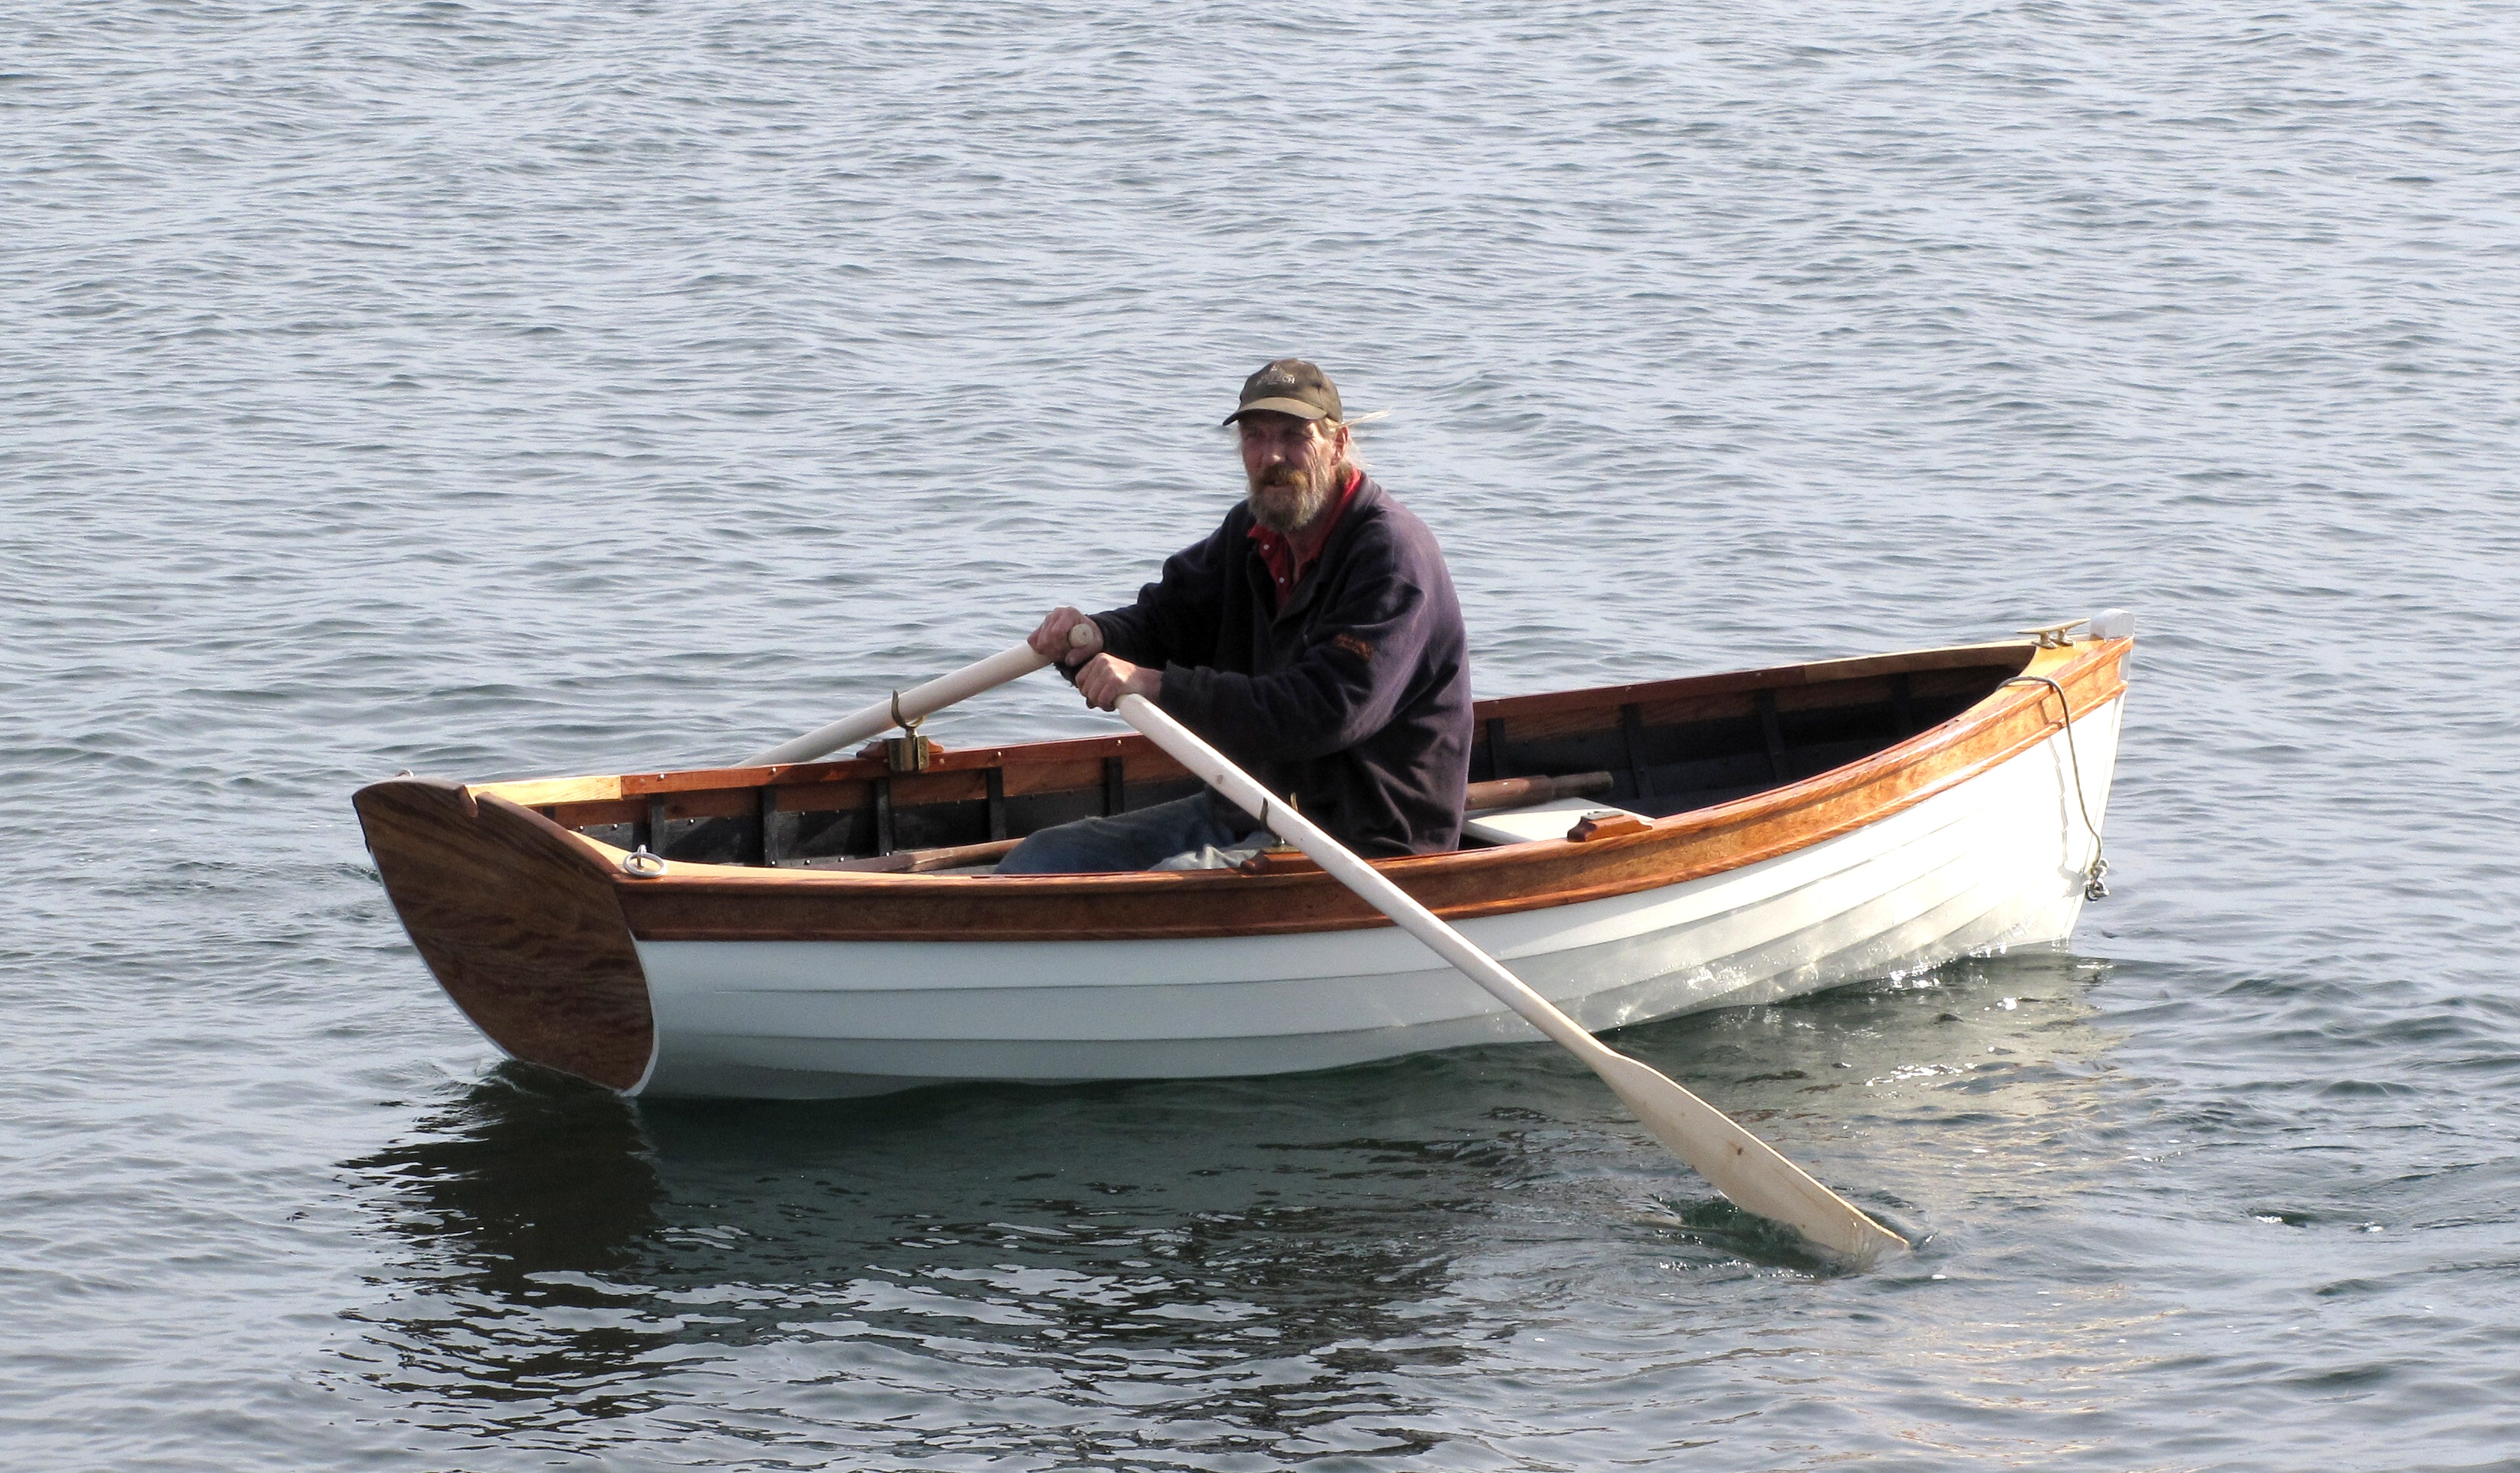 Wooden Dinghy Boats For Sale Submited Images.